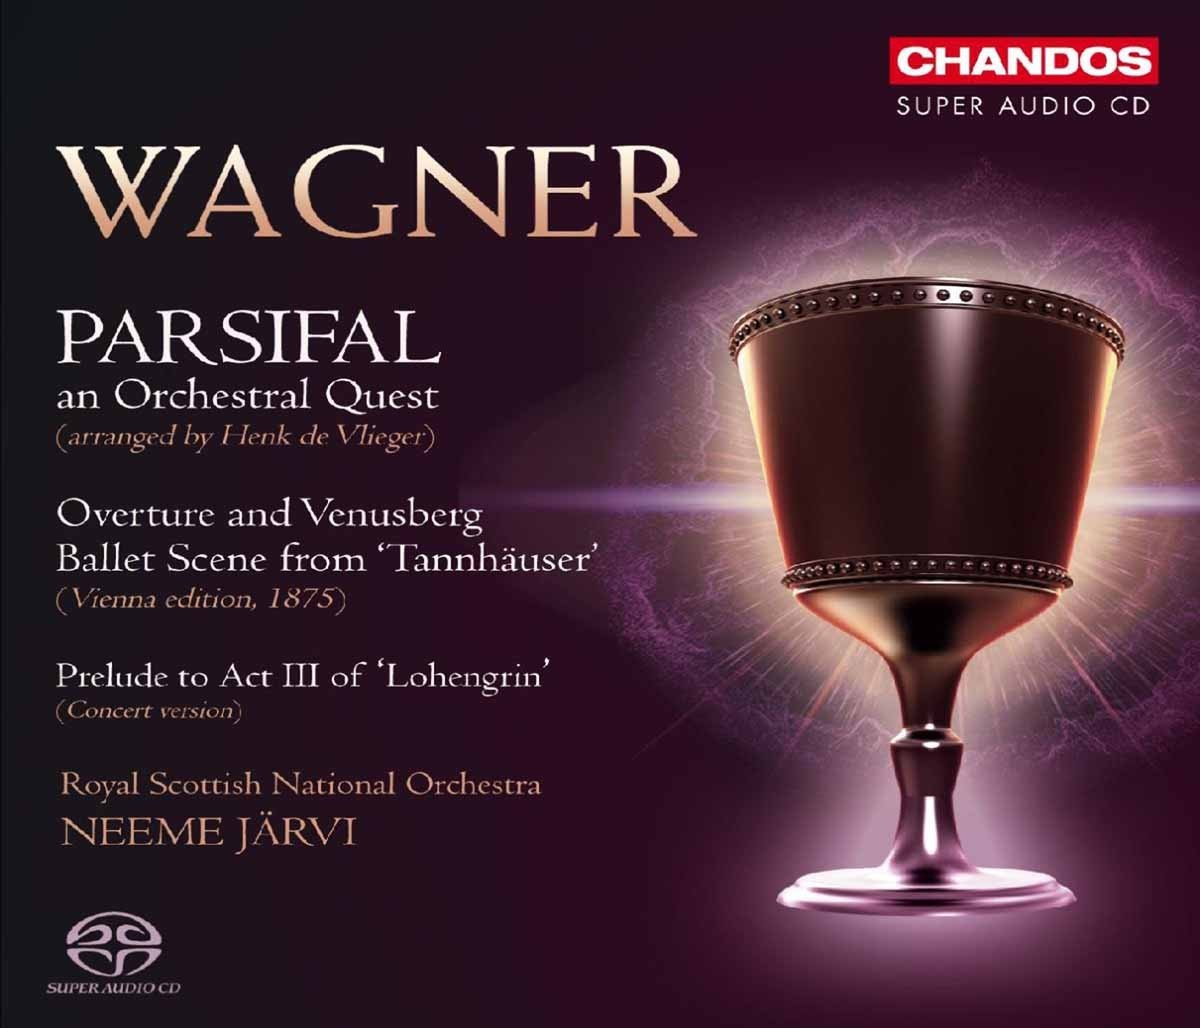 Royal Scottish National Orchestra, Richard Wagner, Neeme Jarvi, William  Chandler - Wagner: Parsifal - An Orchestral Quest - Amazon.com Music